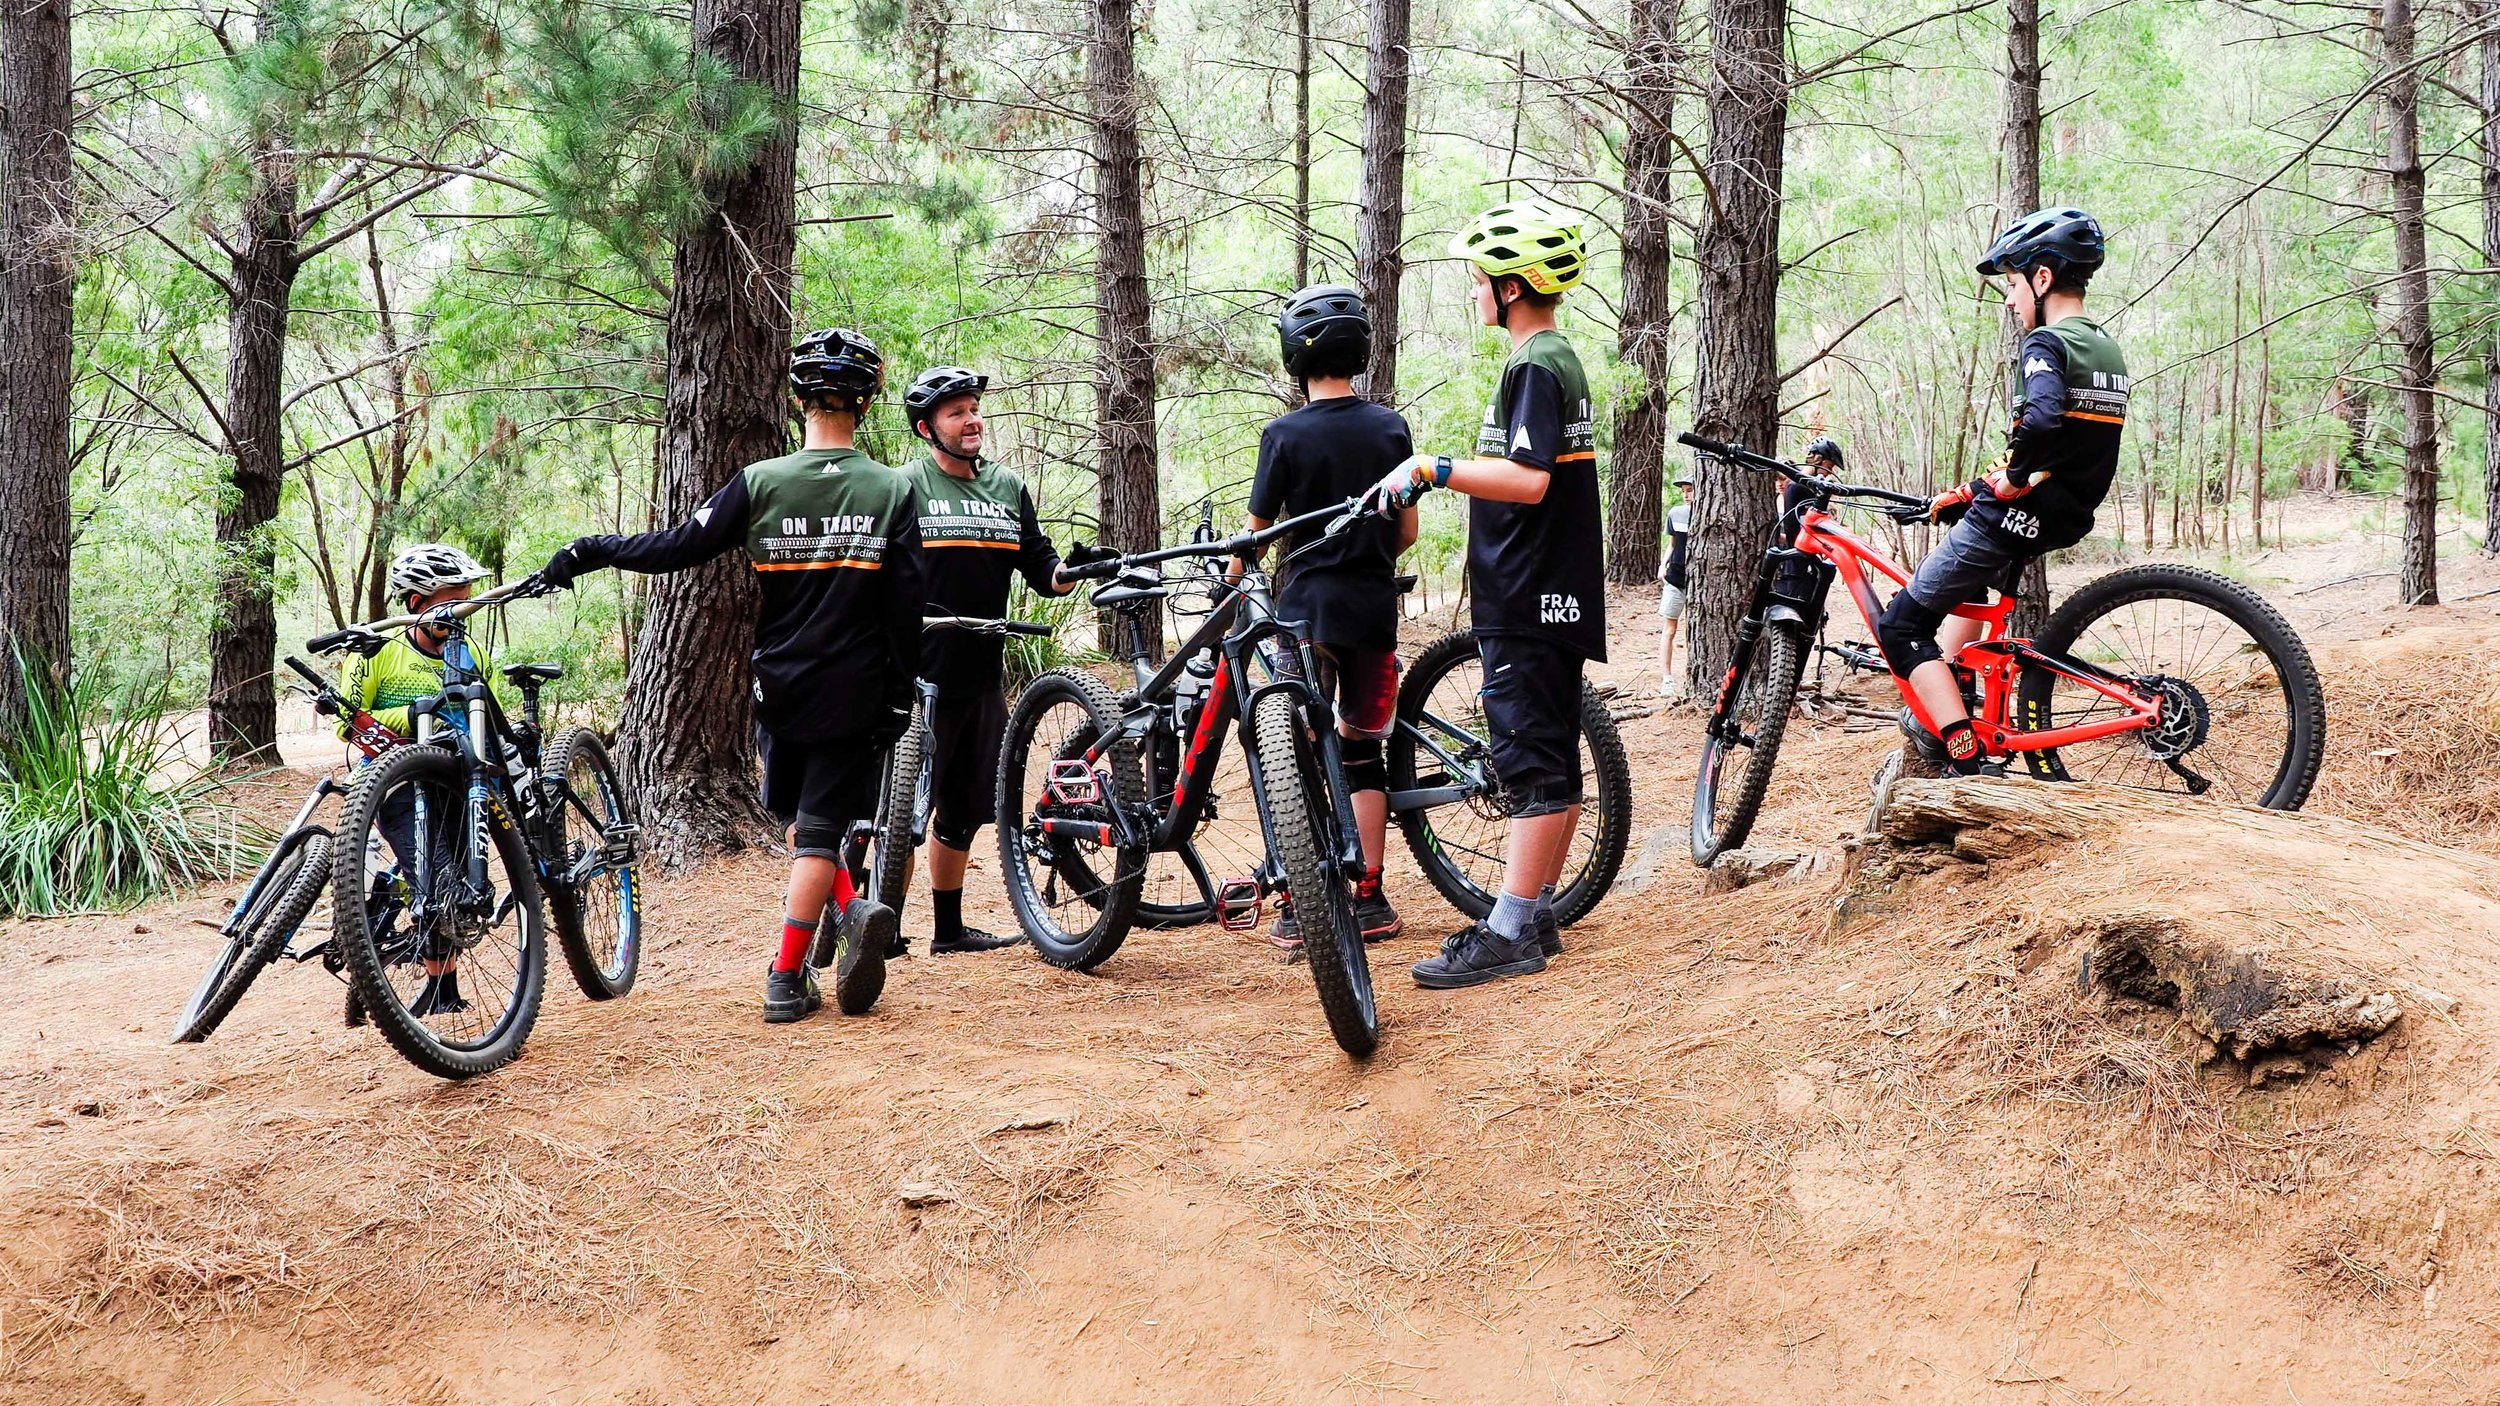 Steve Lane giving some of the Groms some tips and pointers out on the trail.